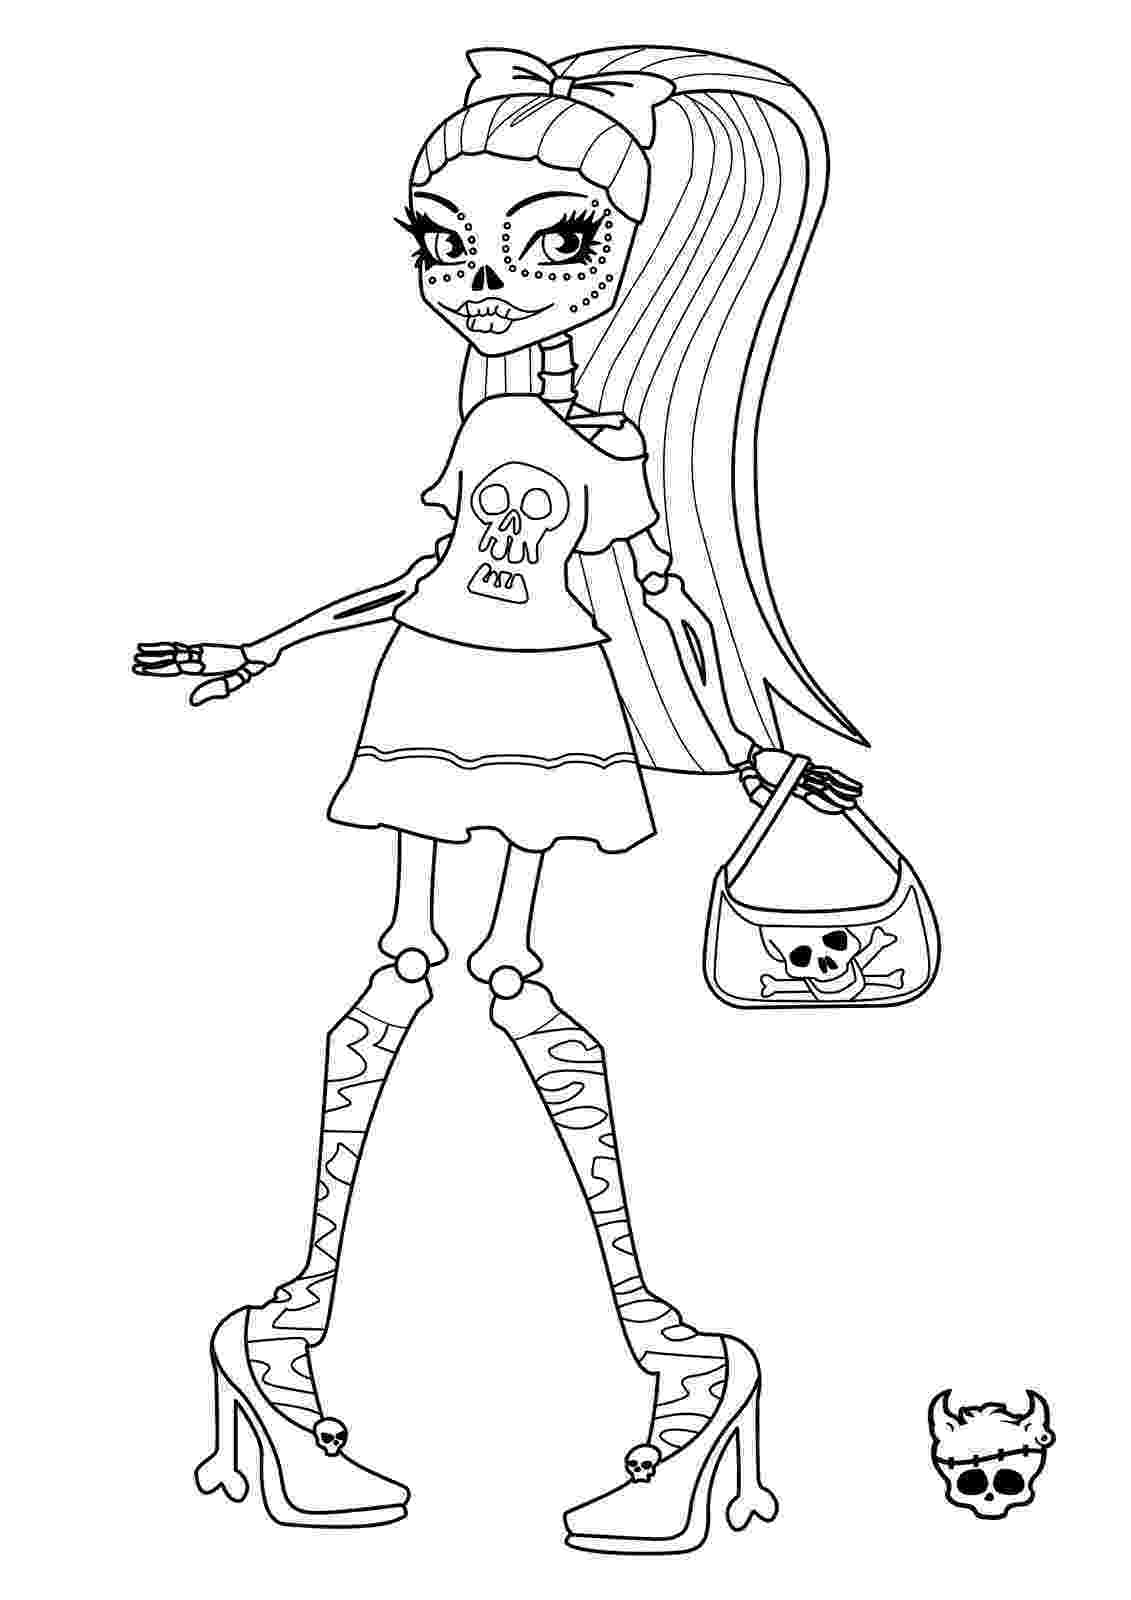 monster high coloring book games monster high operetta coloring page free printable coloring high games monster book